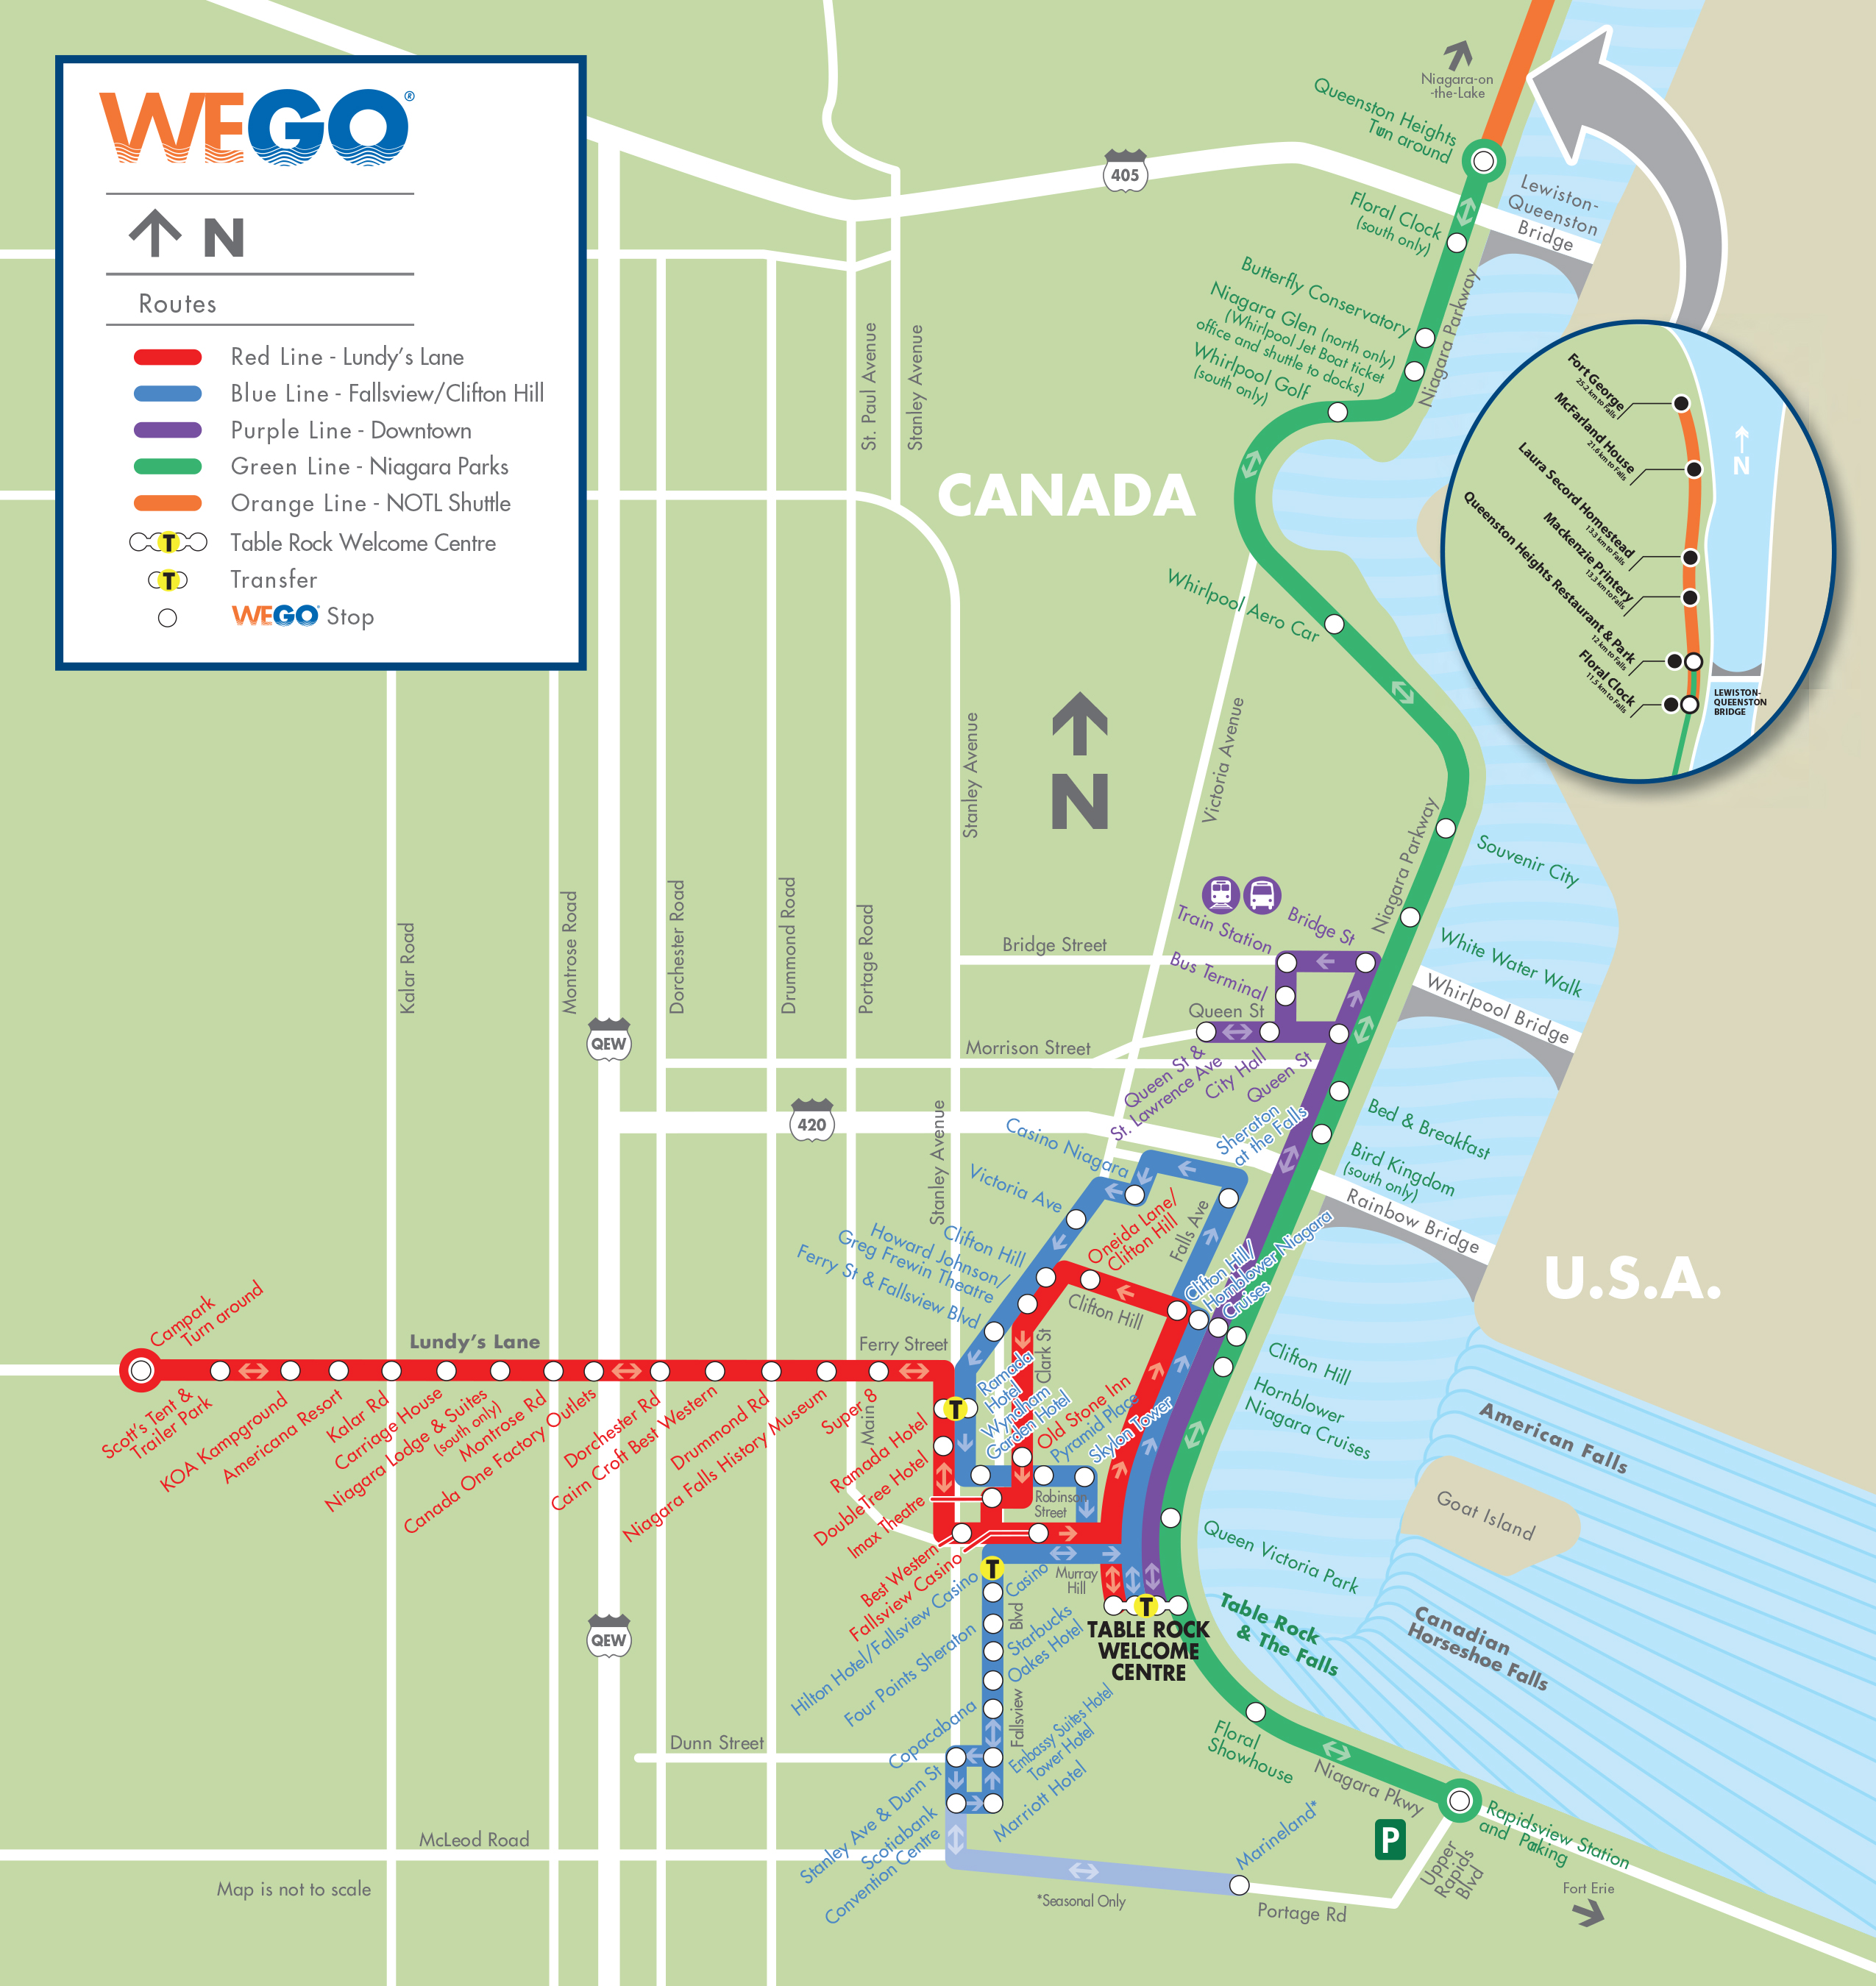 WEGO Route Map – Niagara Falls 5k, 10k, Half & International ... on skylon tower, whistler map, cave of the winds, niagra falls hotel map, horseshoe falls, goat island, love canal map, hudson river, mount rushmore map, niagara river map, toronto map, philadelphia map, whitestone map, montreal map, iguazu falls, manhattan map, bridal veil falls, st. catharines map, yosemite national park, canadian rockies, maid of the mist, new york map, edmonton map, grand canyon map, washington dc map, victoria falls, quebec city, charleston map, welland canal map, rainbow bridge, aquarium of niagara map, amazon river, american falls, lake superior map, new orleans map,